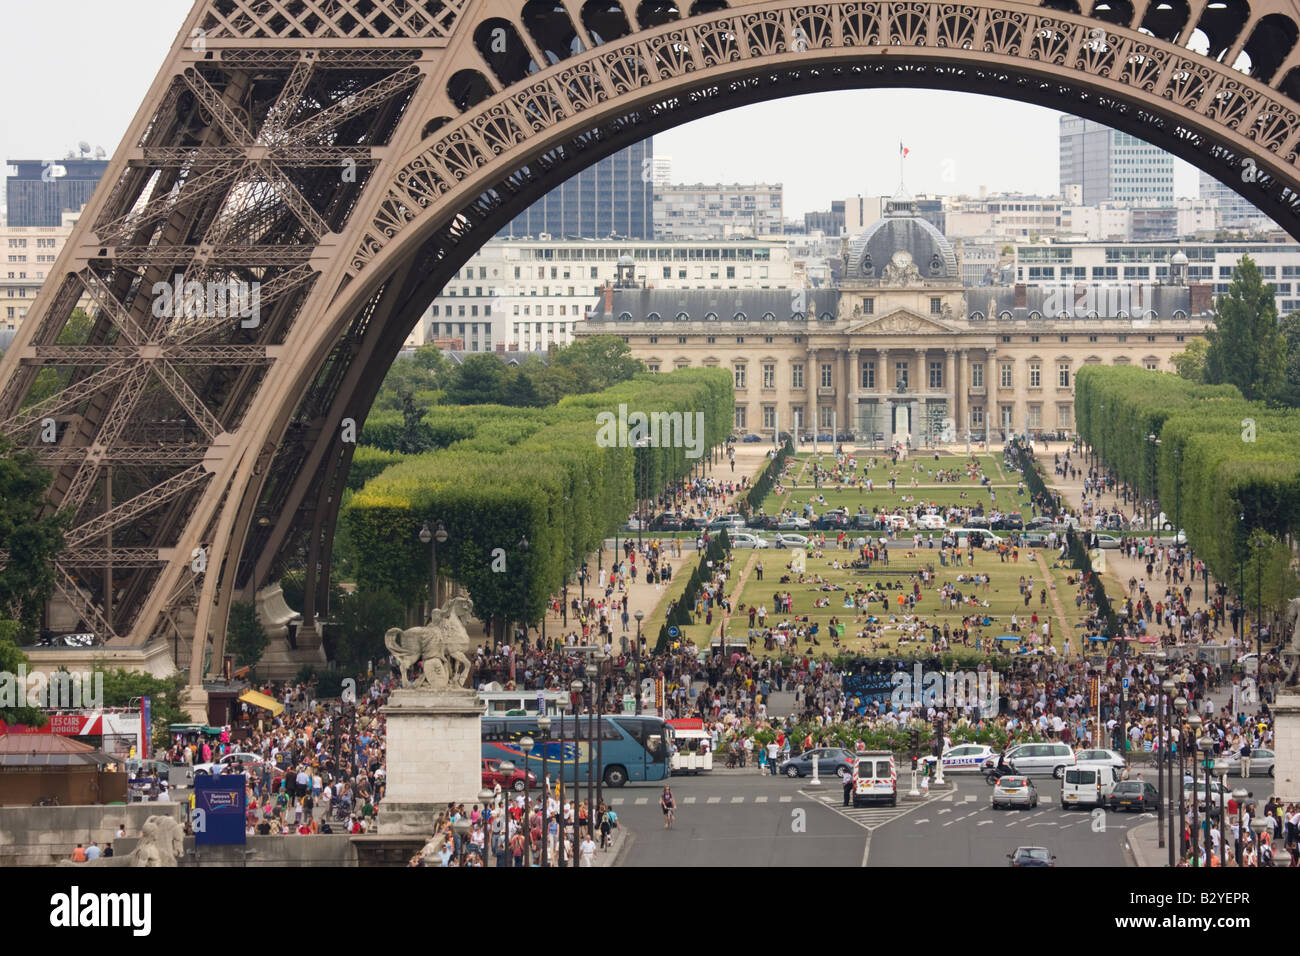 Groups of people in the shadow of the Eiffel Tower and Parc du Champ de Mars in the background Paris France - Stock Image